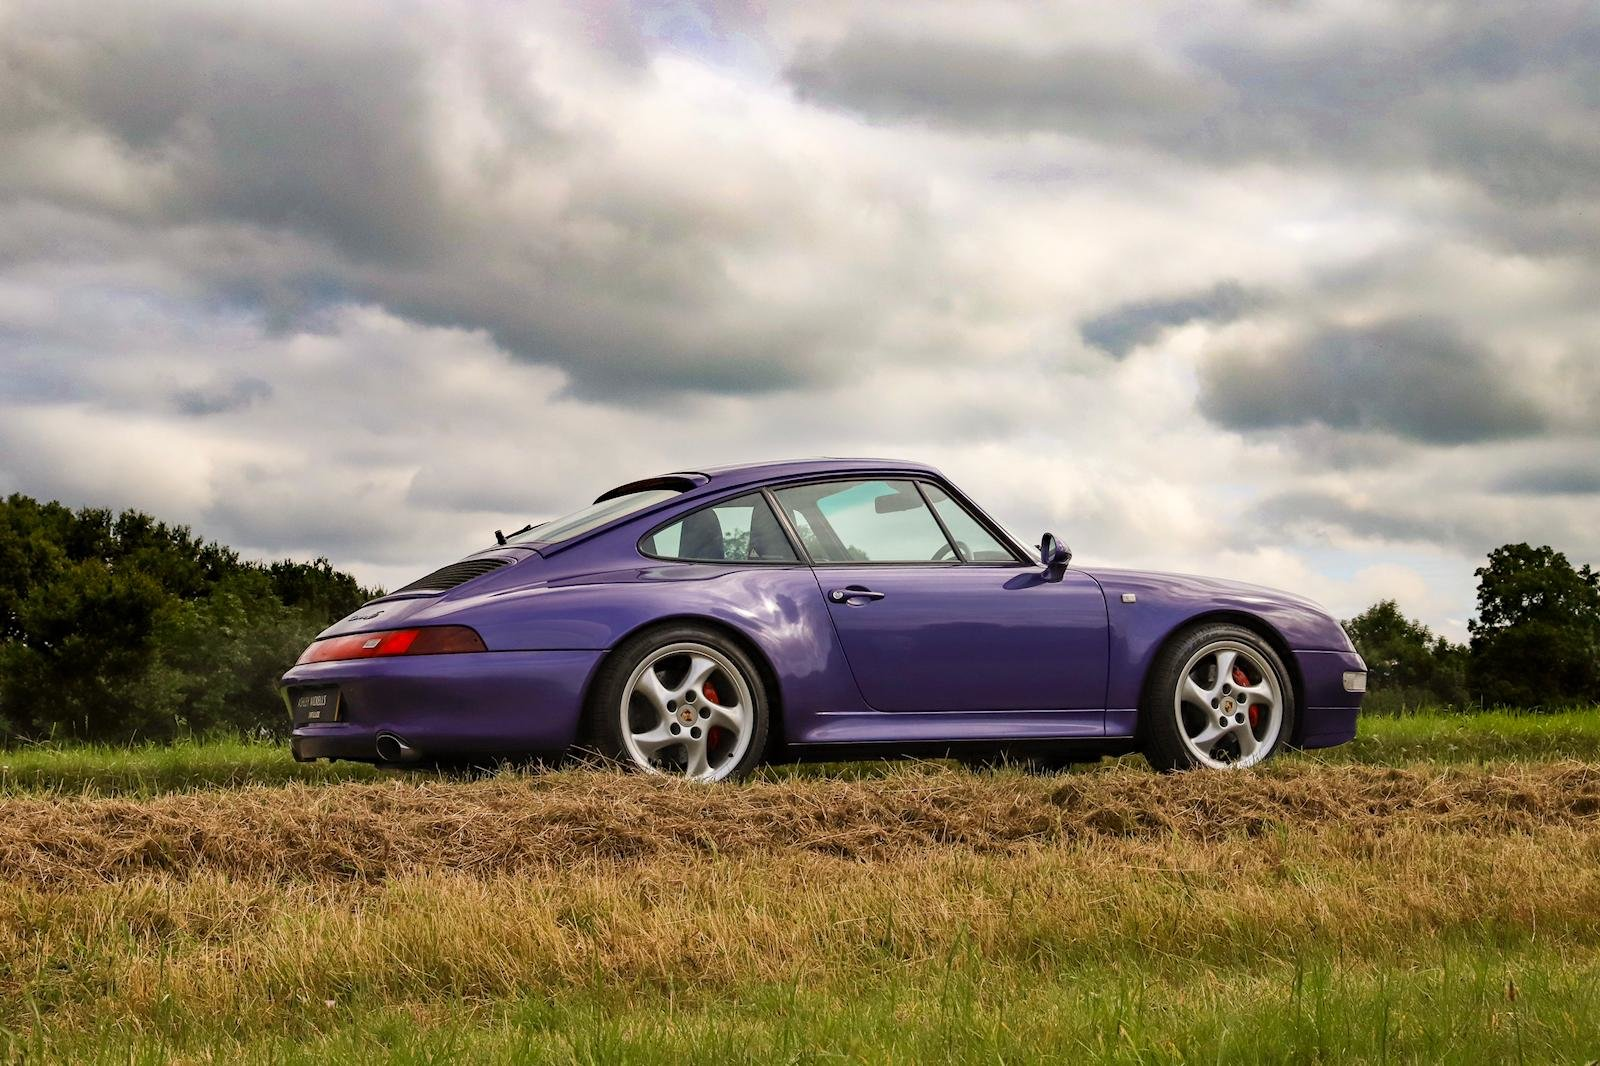 1998 RARE 993 LOW MILEAGE MANUAL C 4S - SPECTACULAR VIOLET BLUE   For Sale (picture 3 of 6)